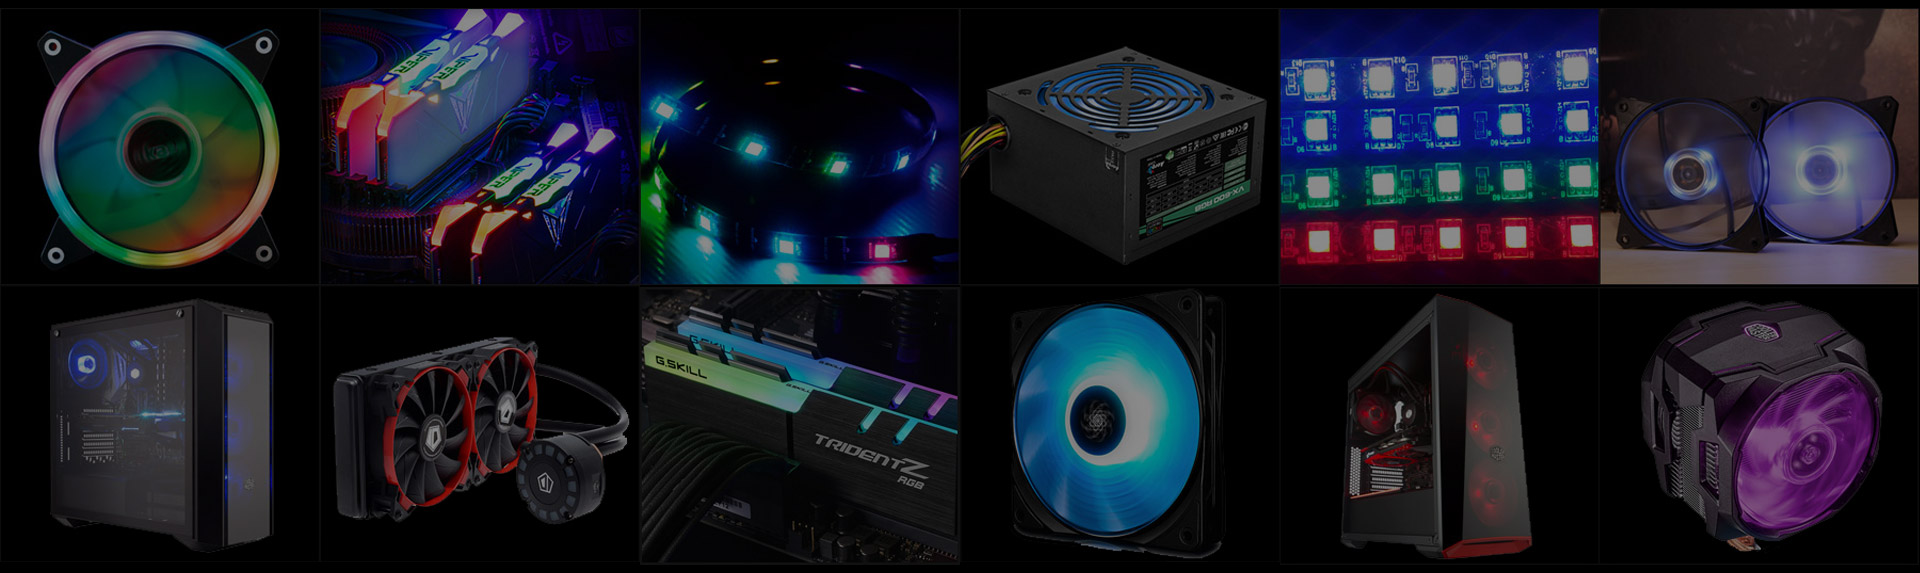 RGB Devices That Include Case Fans, Memory Modules, RGB Light Strips, Power Supplies, Cases and CPU Coolers